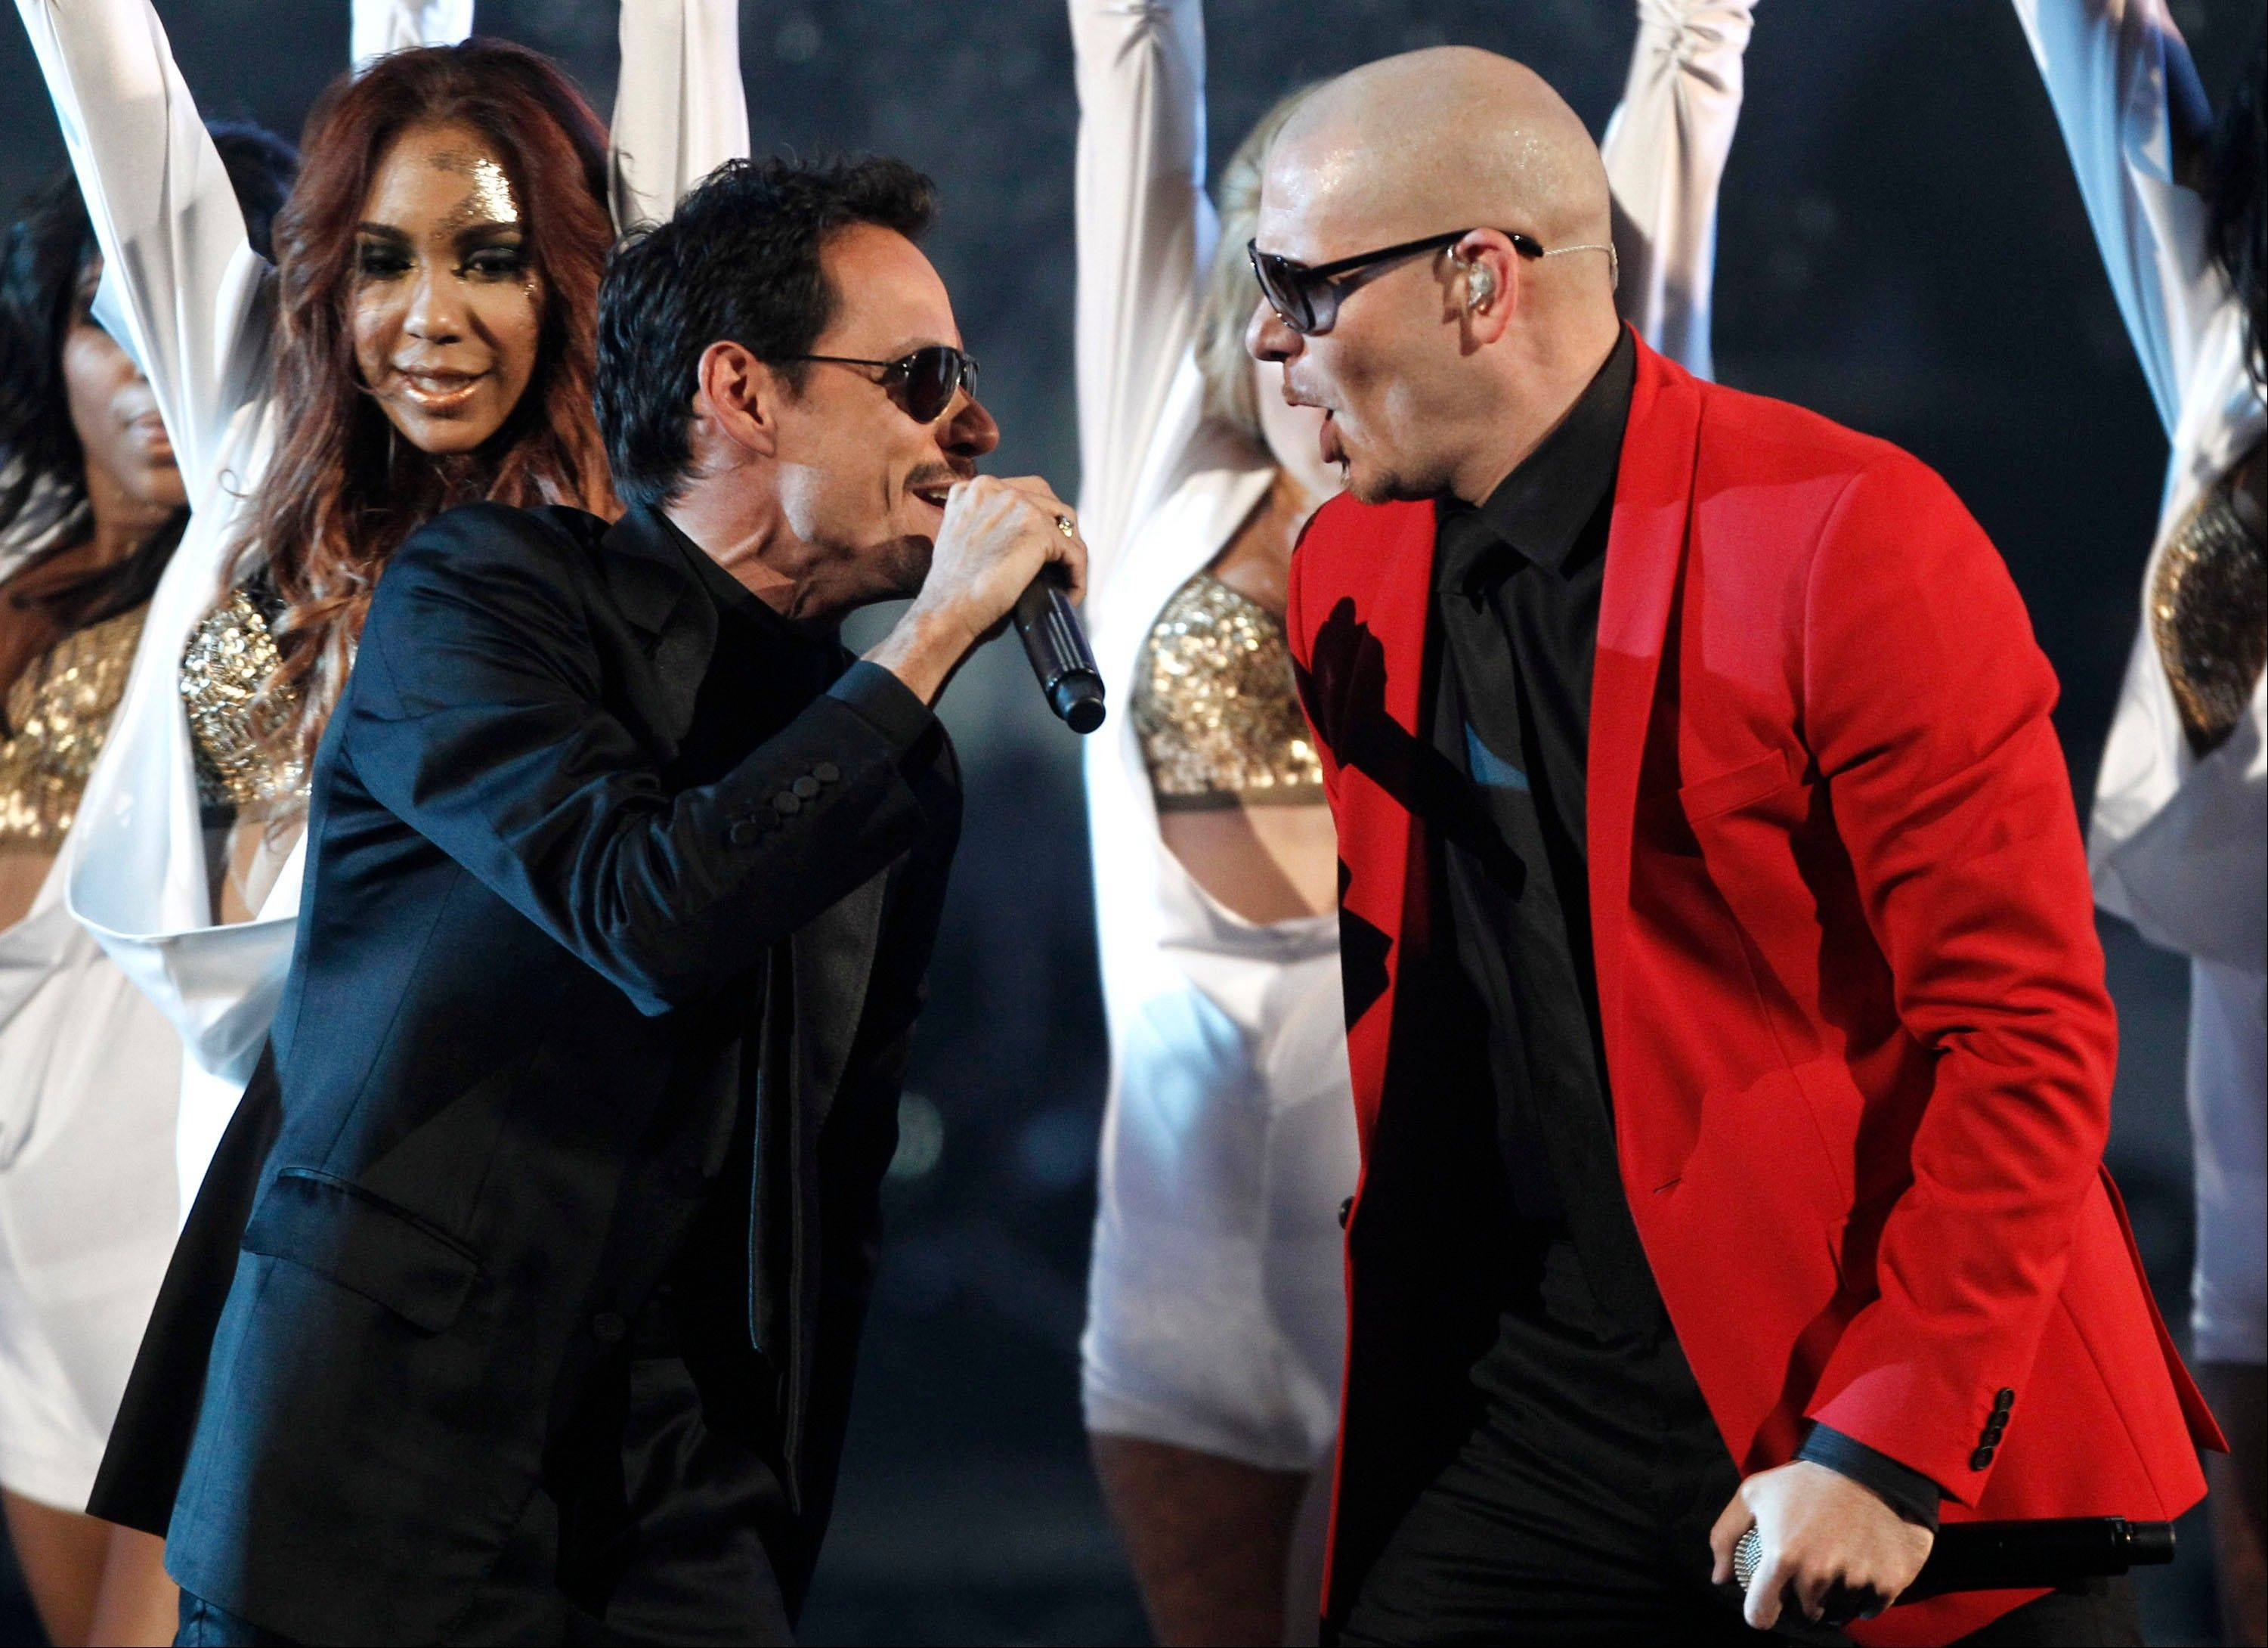 Marc Anthony, left, and Pittbull perform at the 39th Annual American Music Awards on Sunday, Nov. 20, 2011 in Los Angeles.